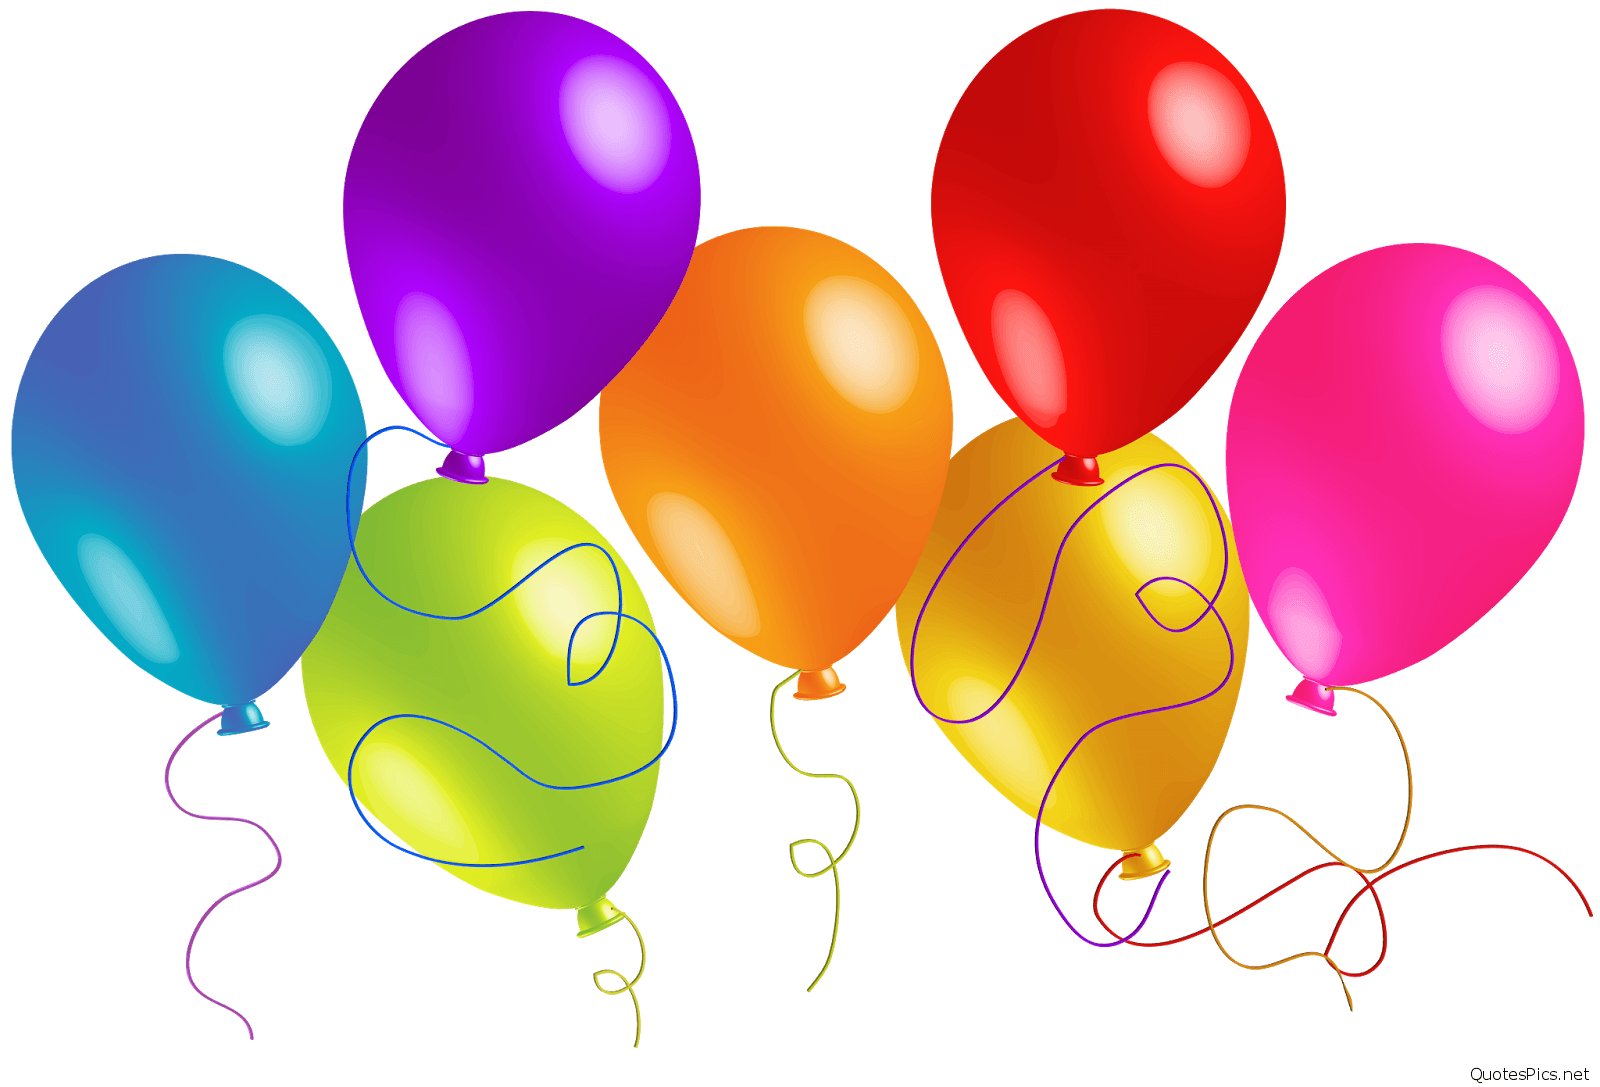 Surprise clipart work anniversary. Business cliparts zone